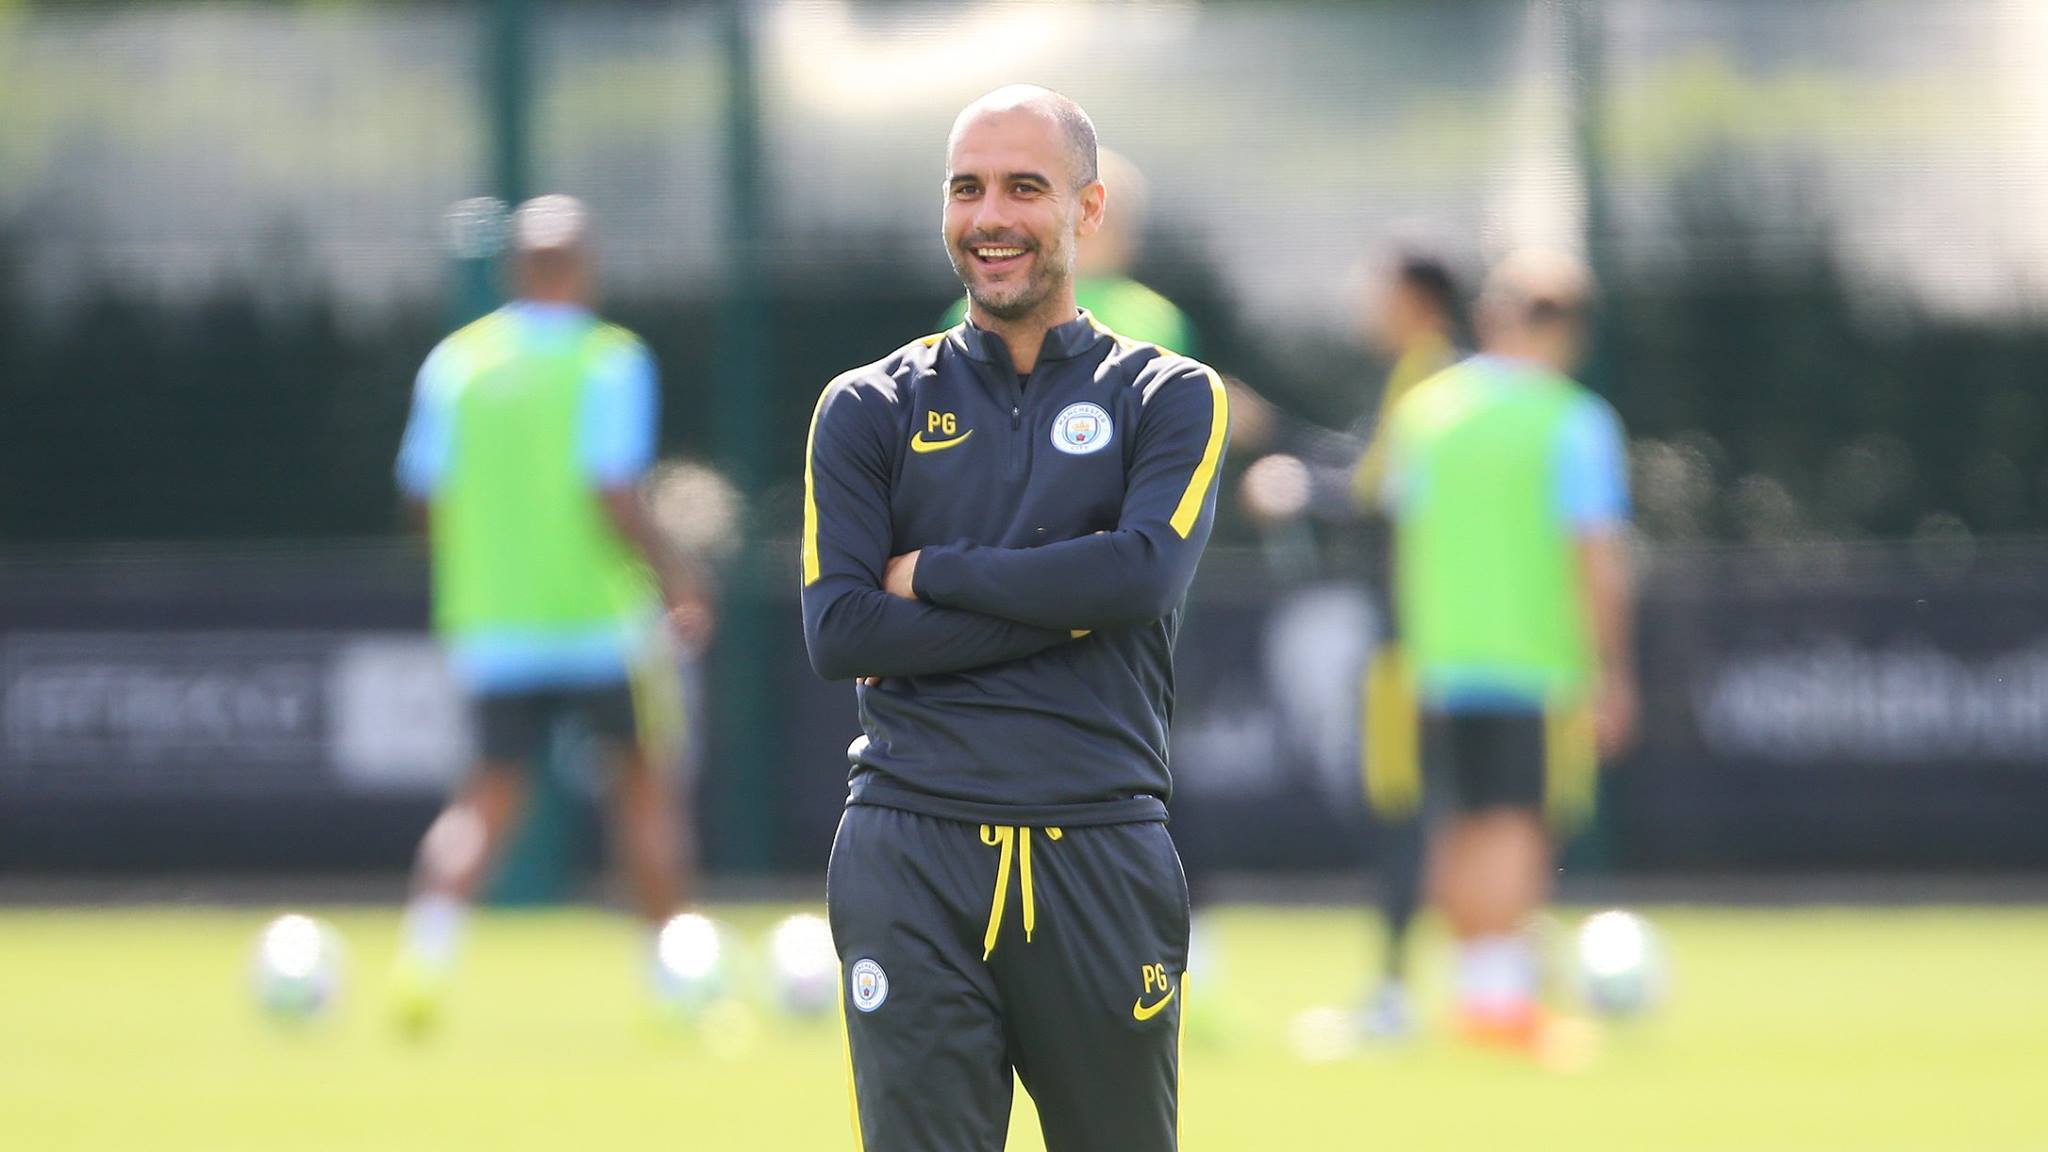 Pep Blueprint - Guardiola is already having a profound effect on City after just five games